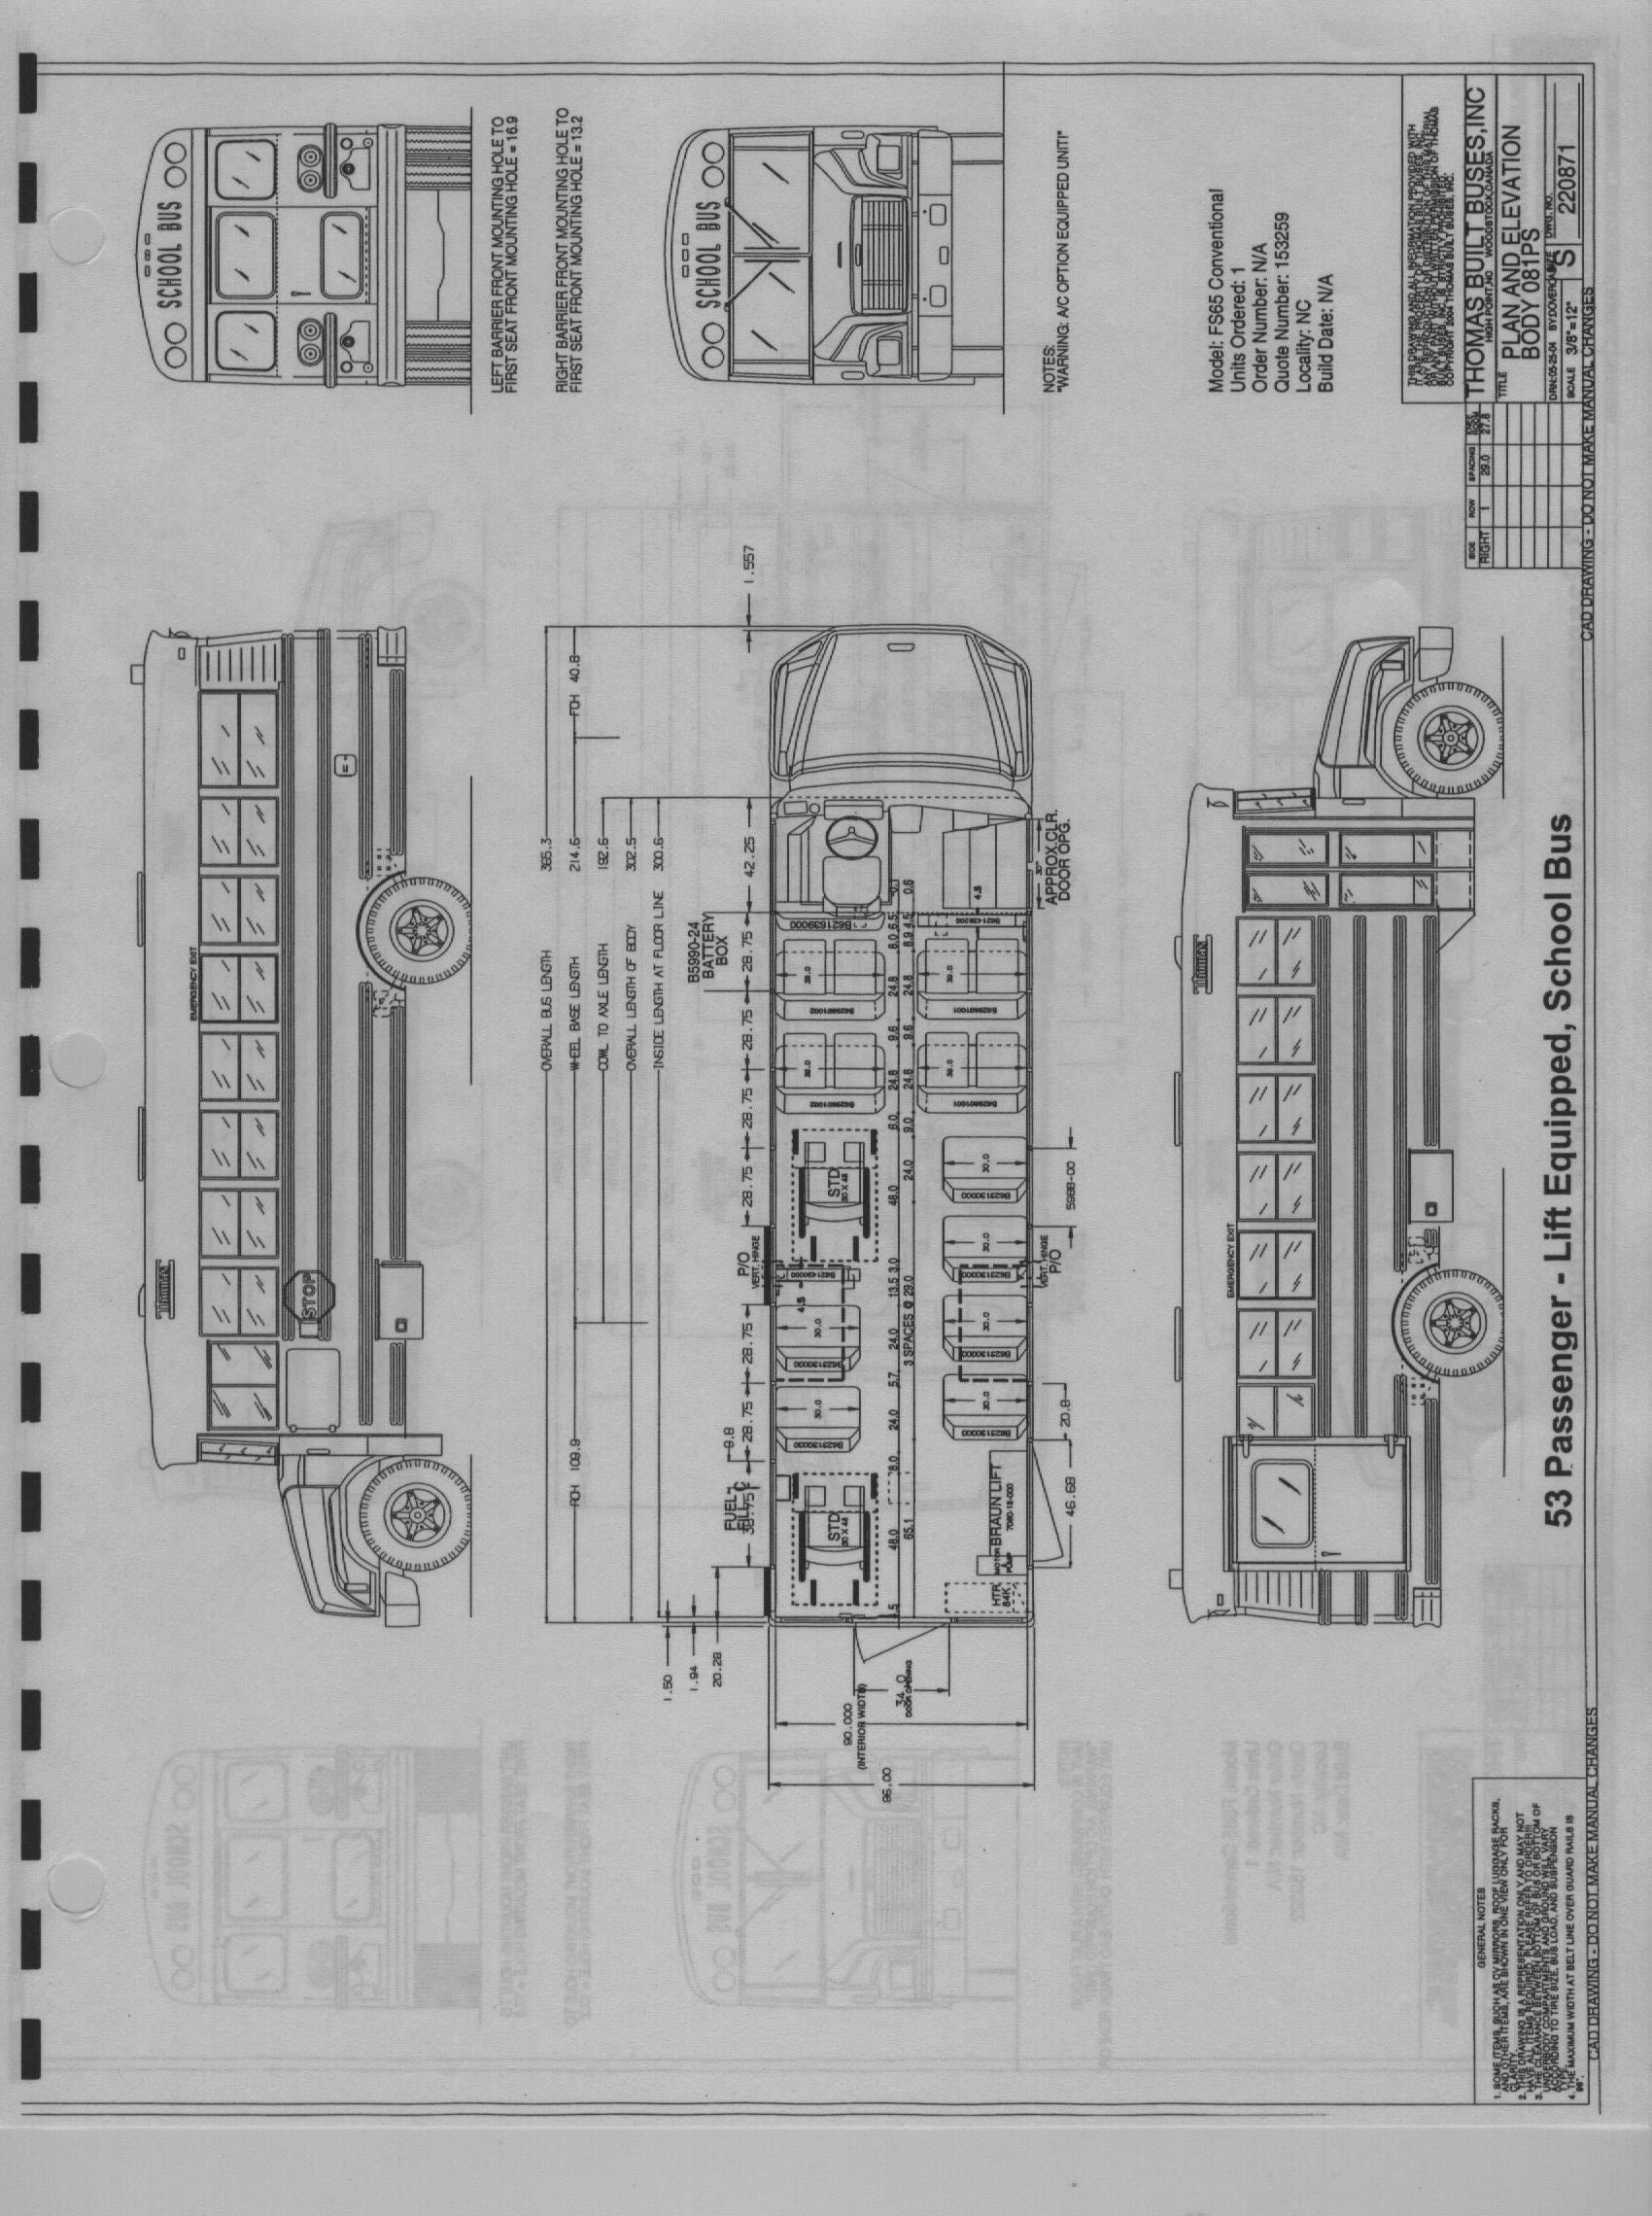 school bus parts diagram control wiring diagrams hvac thomas buses schematics free engine image for